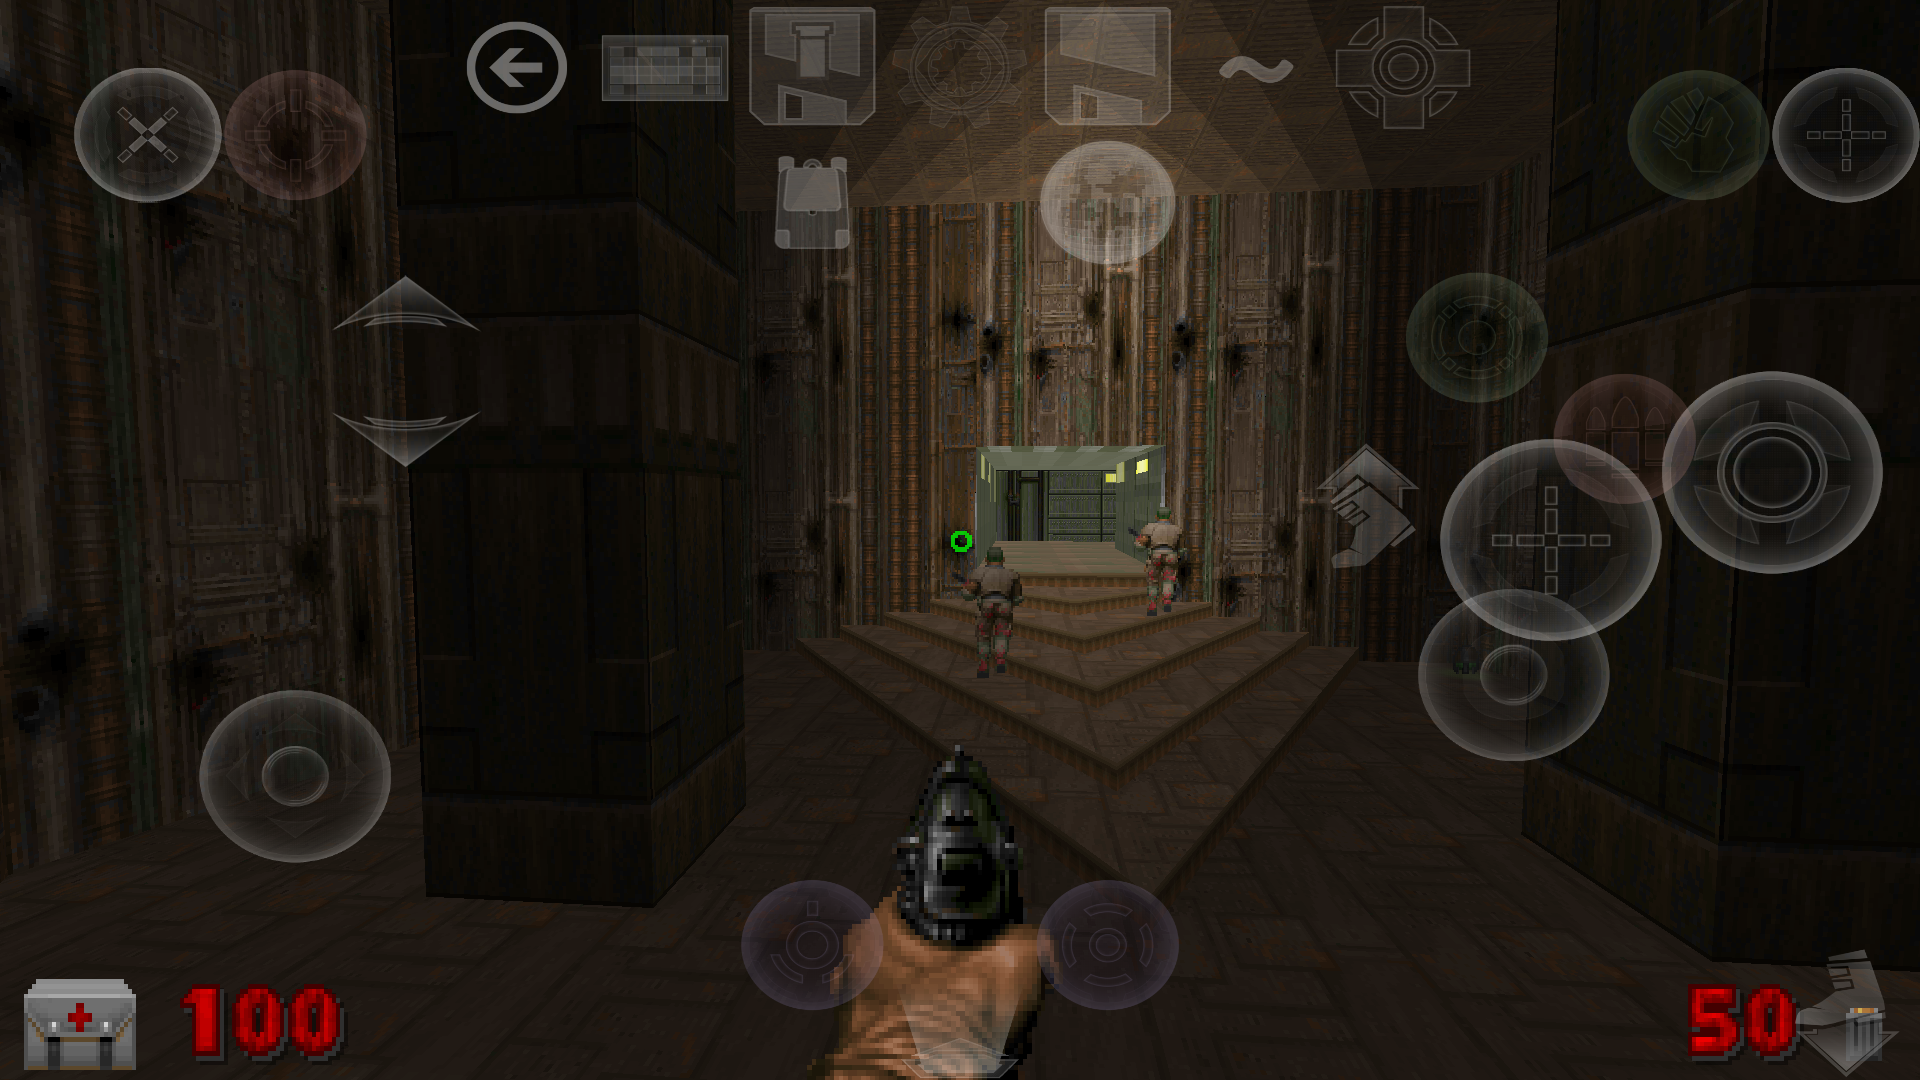 Delta Touch on Android - Page 3 - Doom General - Doomworld